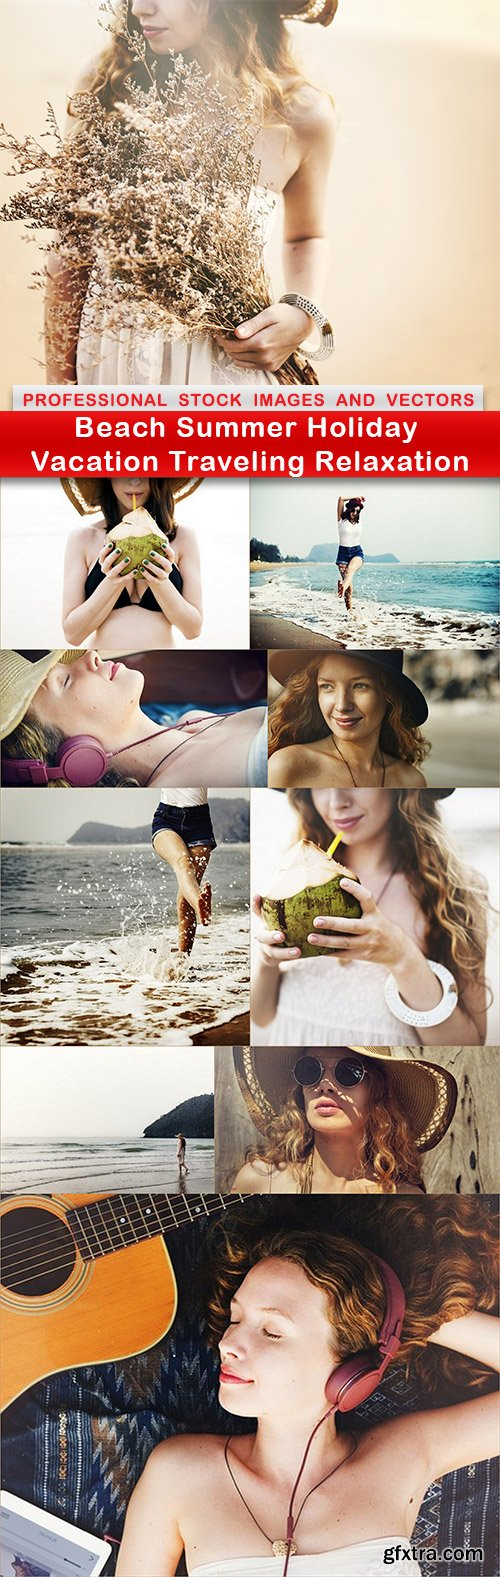 Beach Summer Holiday Vacation Traveling Relaxation - 10 UHQ JPEG